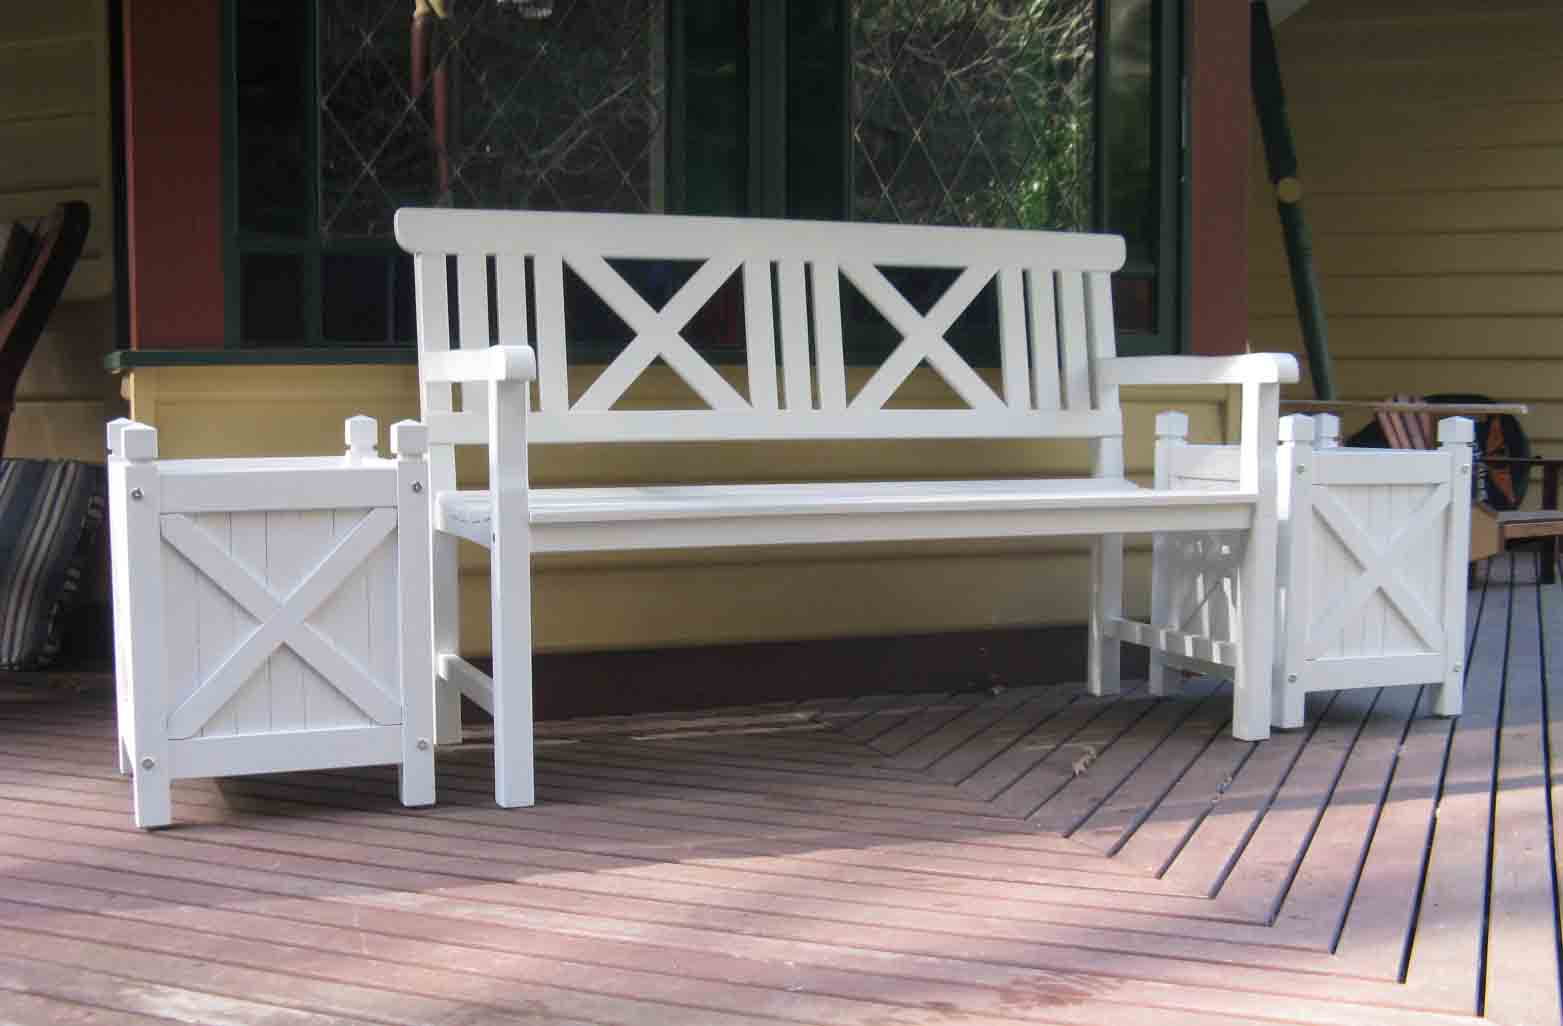 Wooden Bench Seats Perth Outdoor Bench Seats Perth Statues Stone Garden Furniture